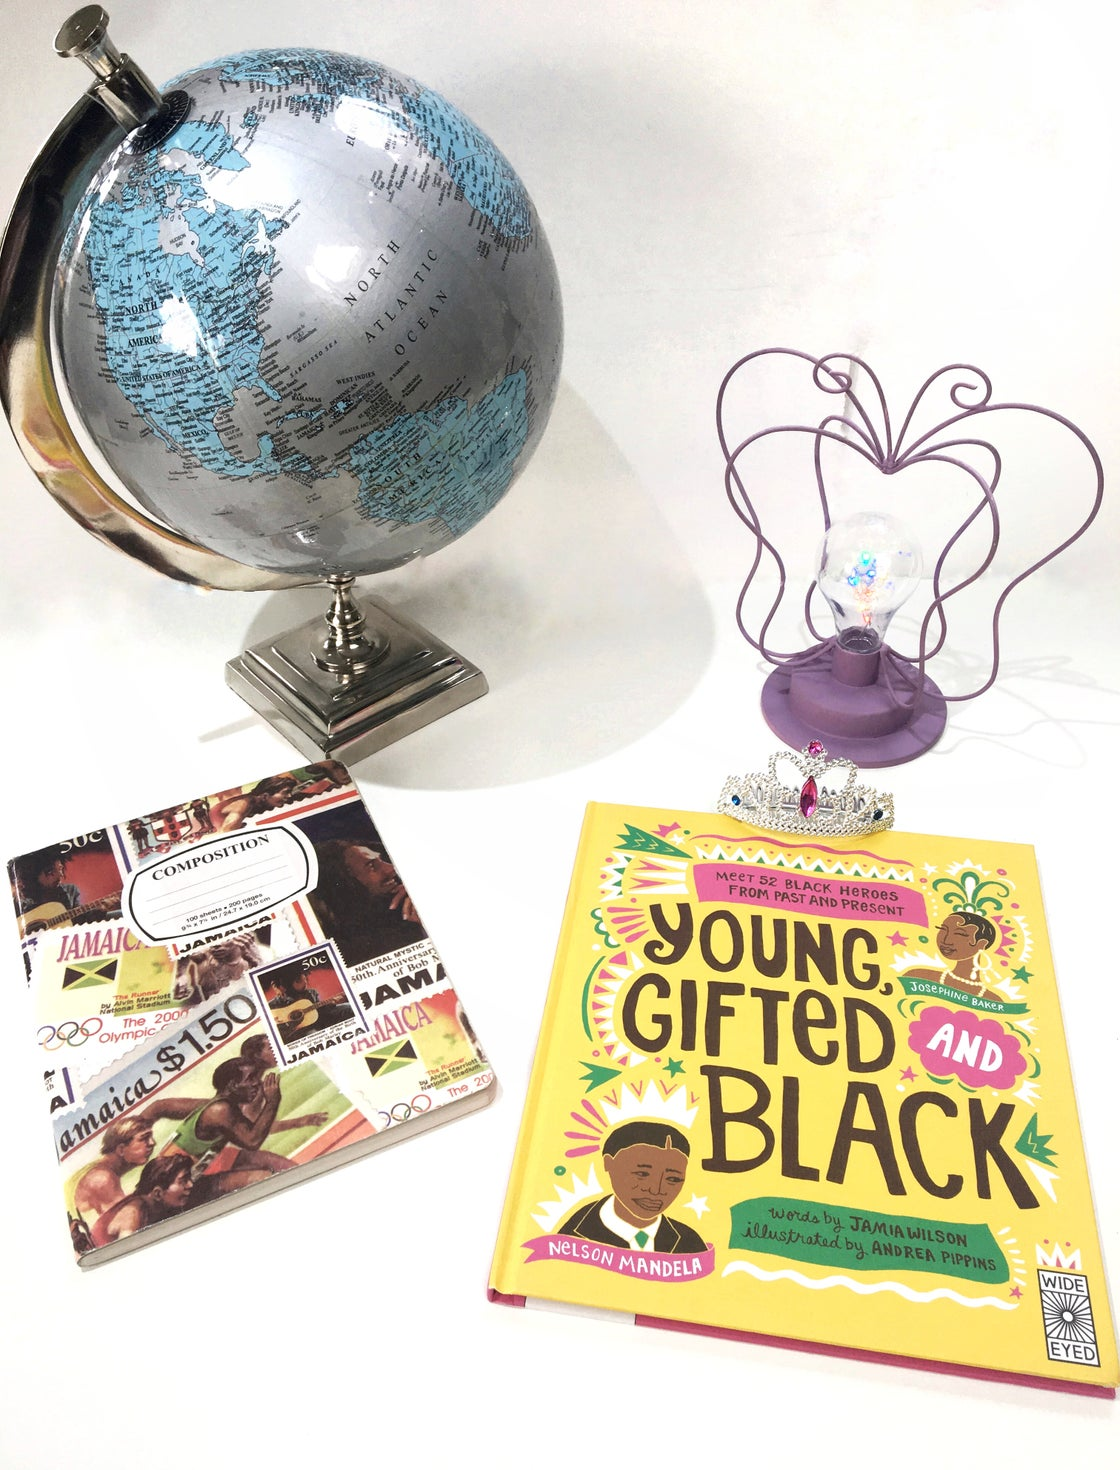 Image of Young, Gifted and Black